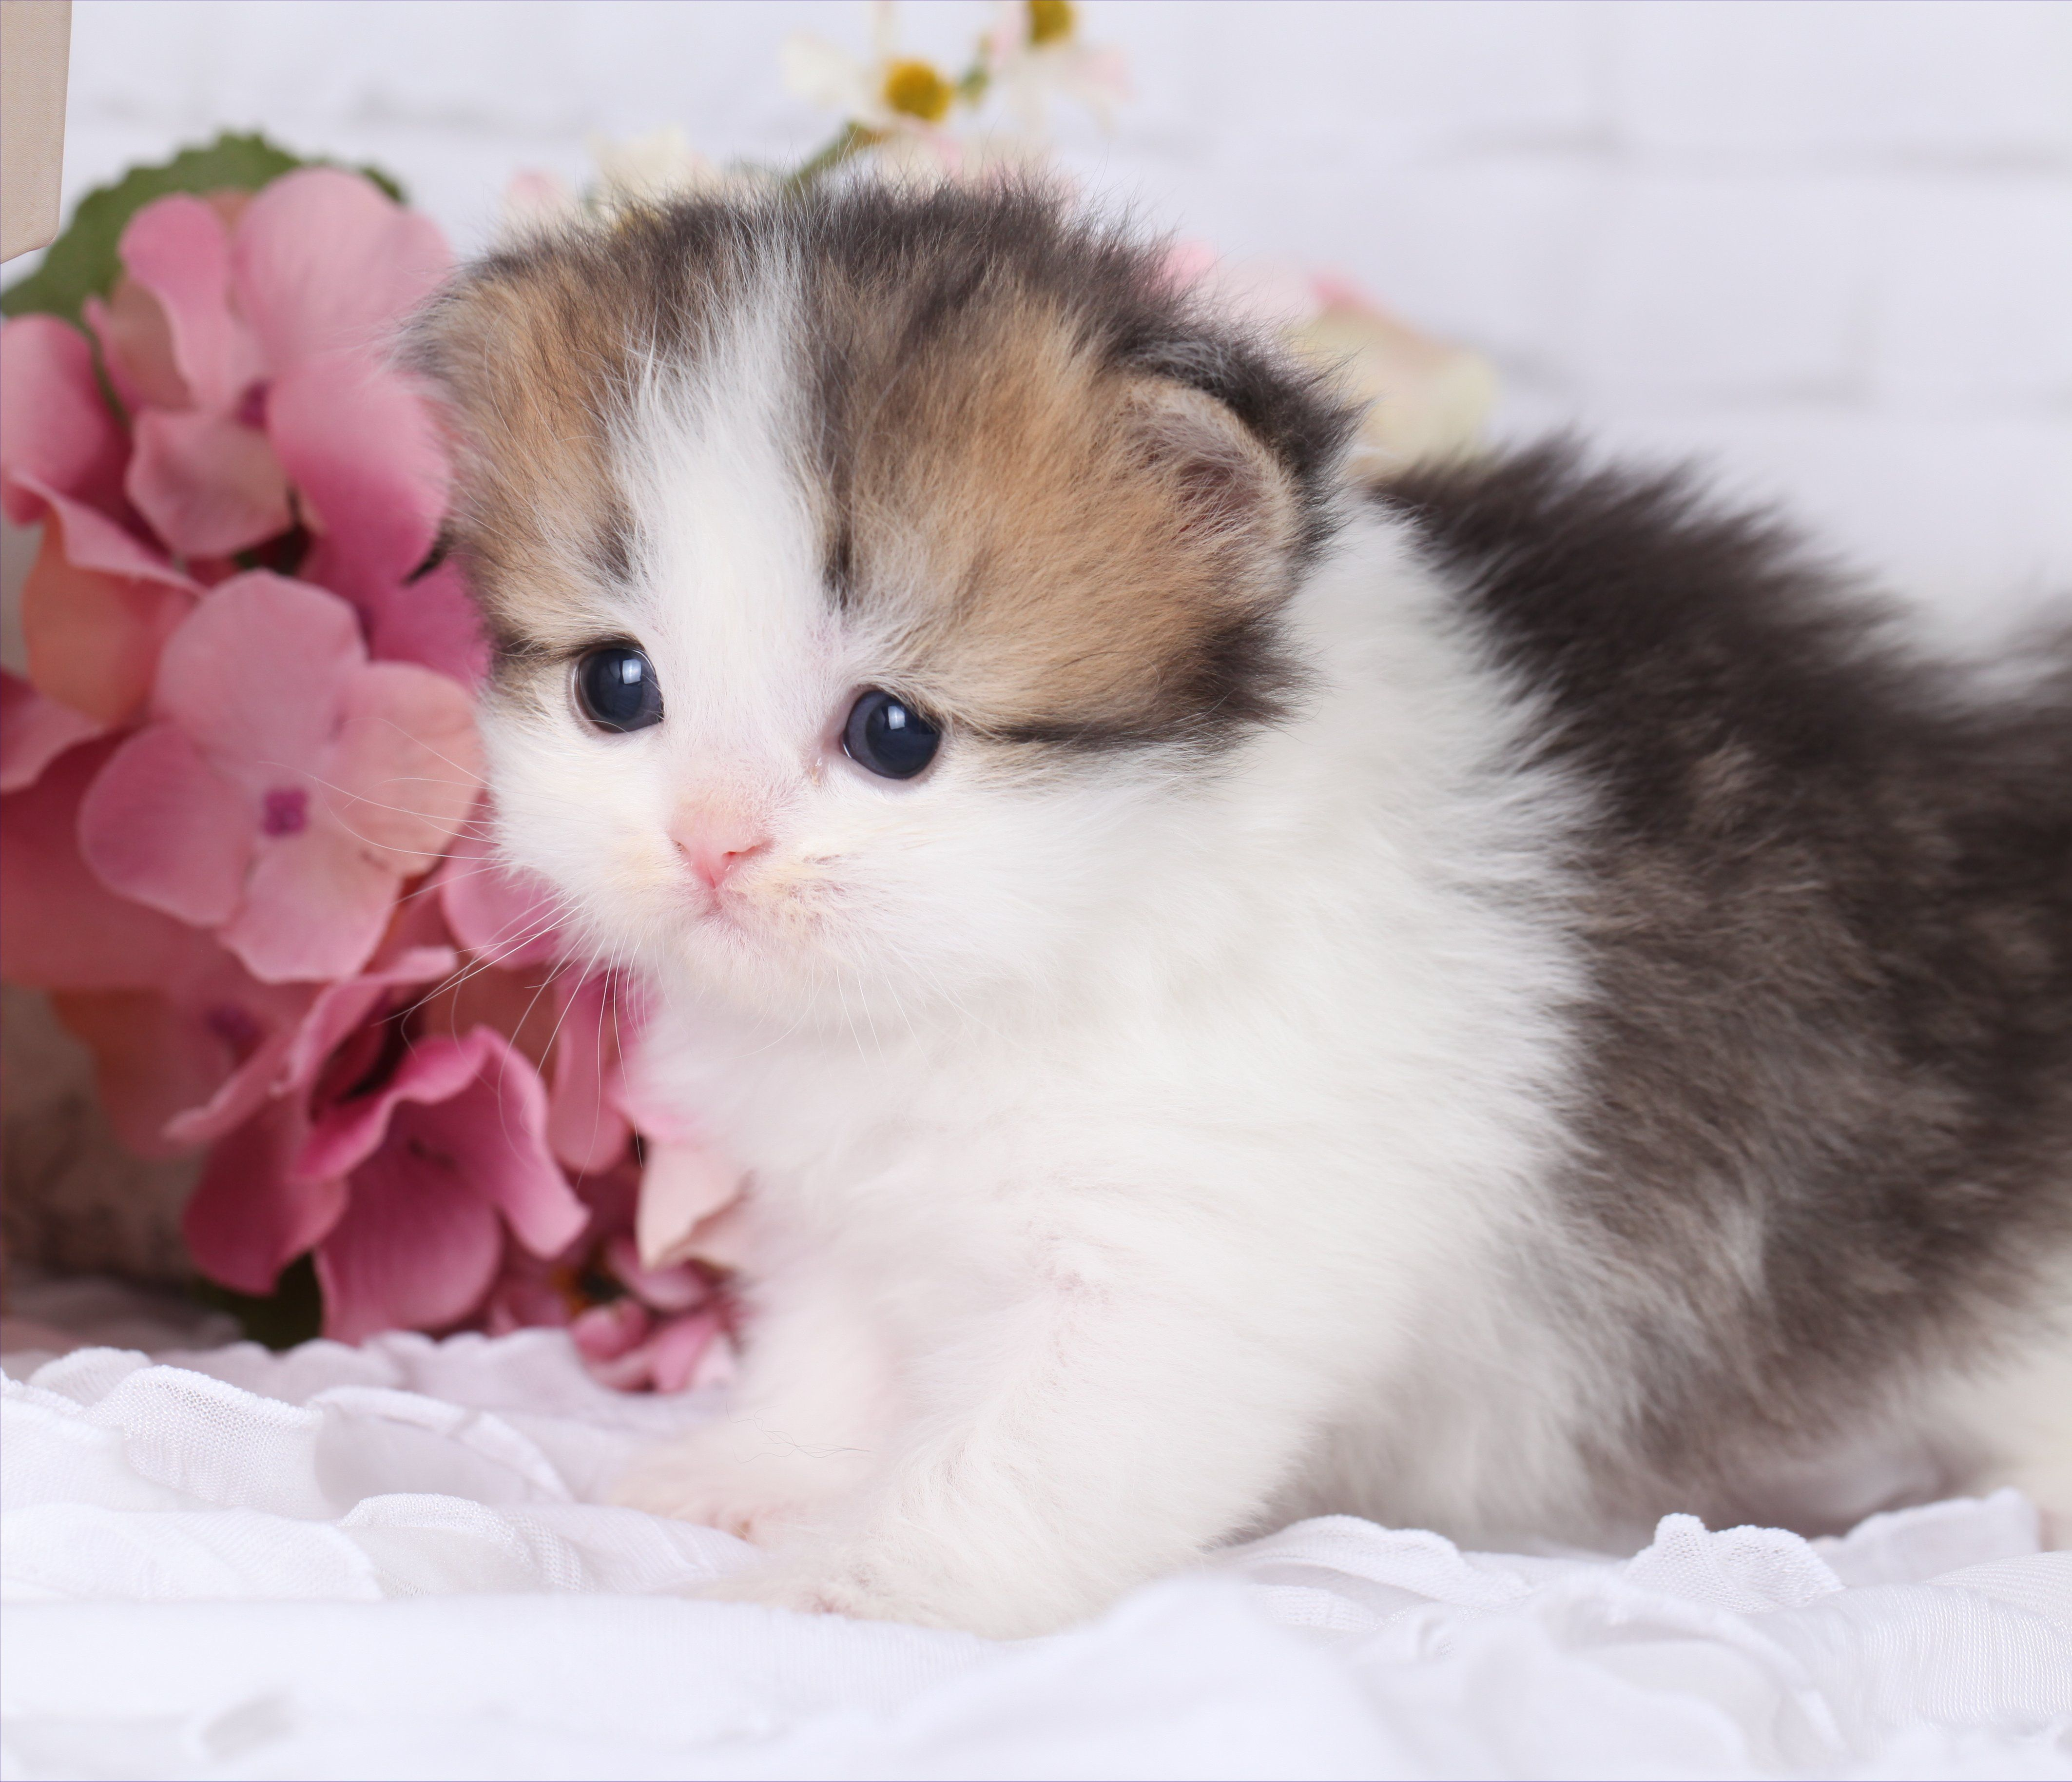 Teacup Rug Hugger Persian Kittens Funny Cat Dog Pictures